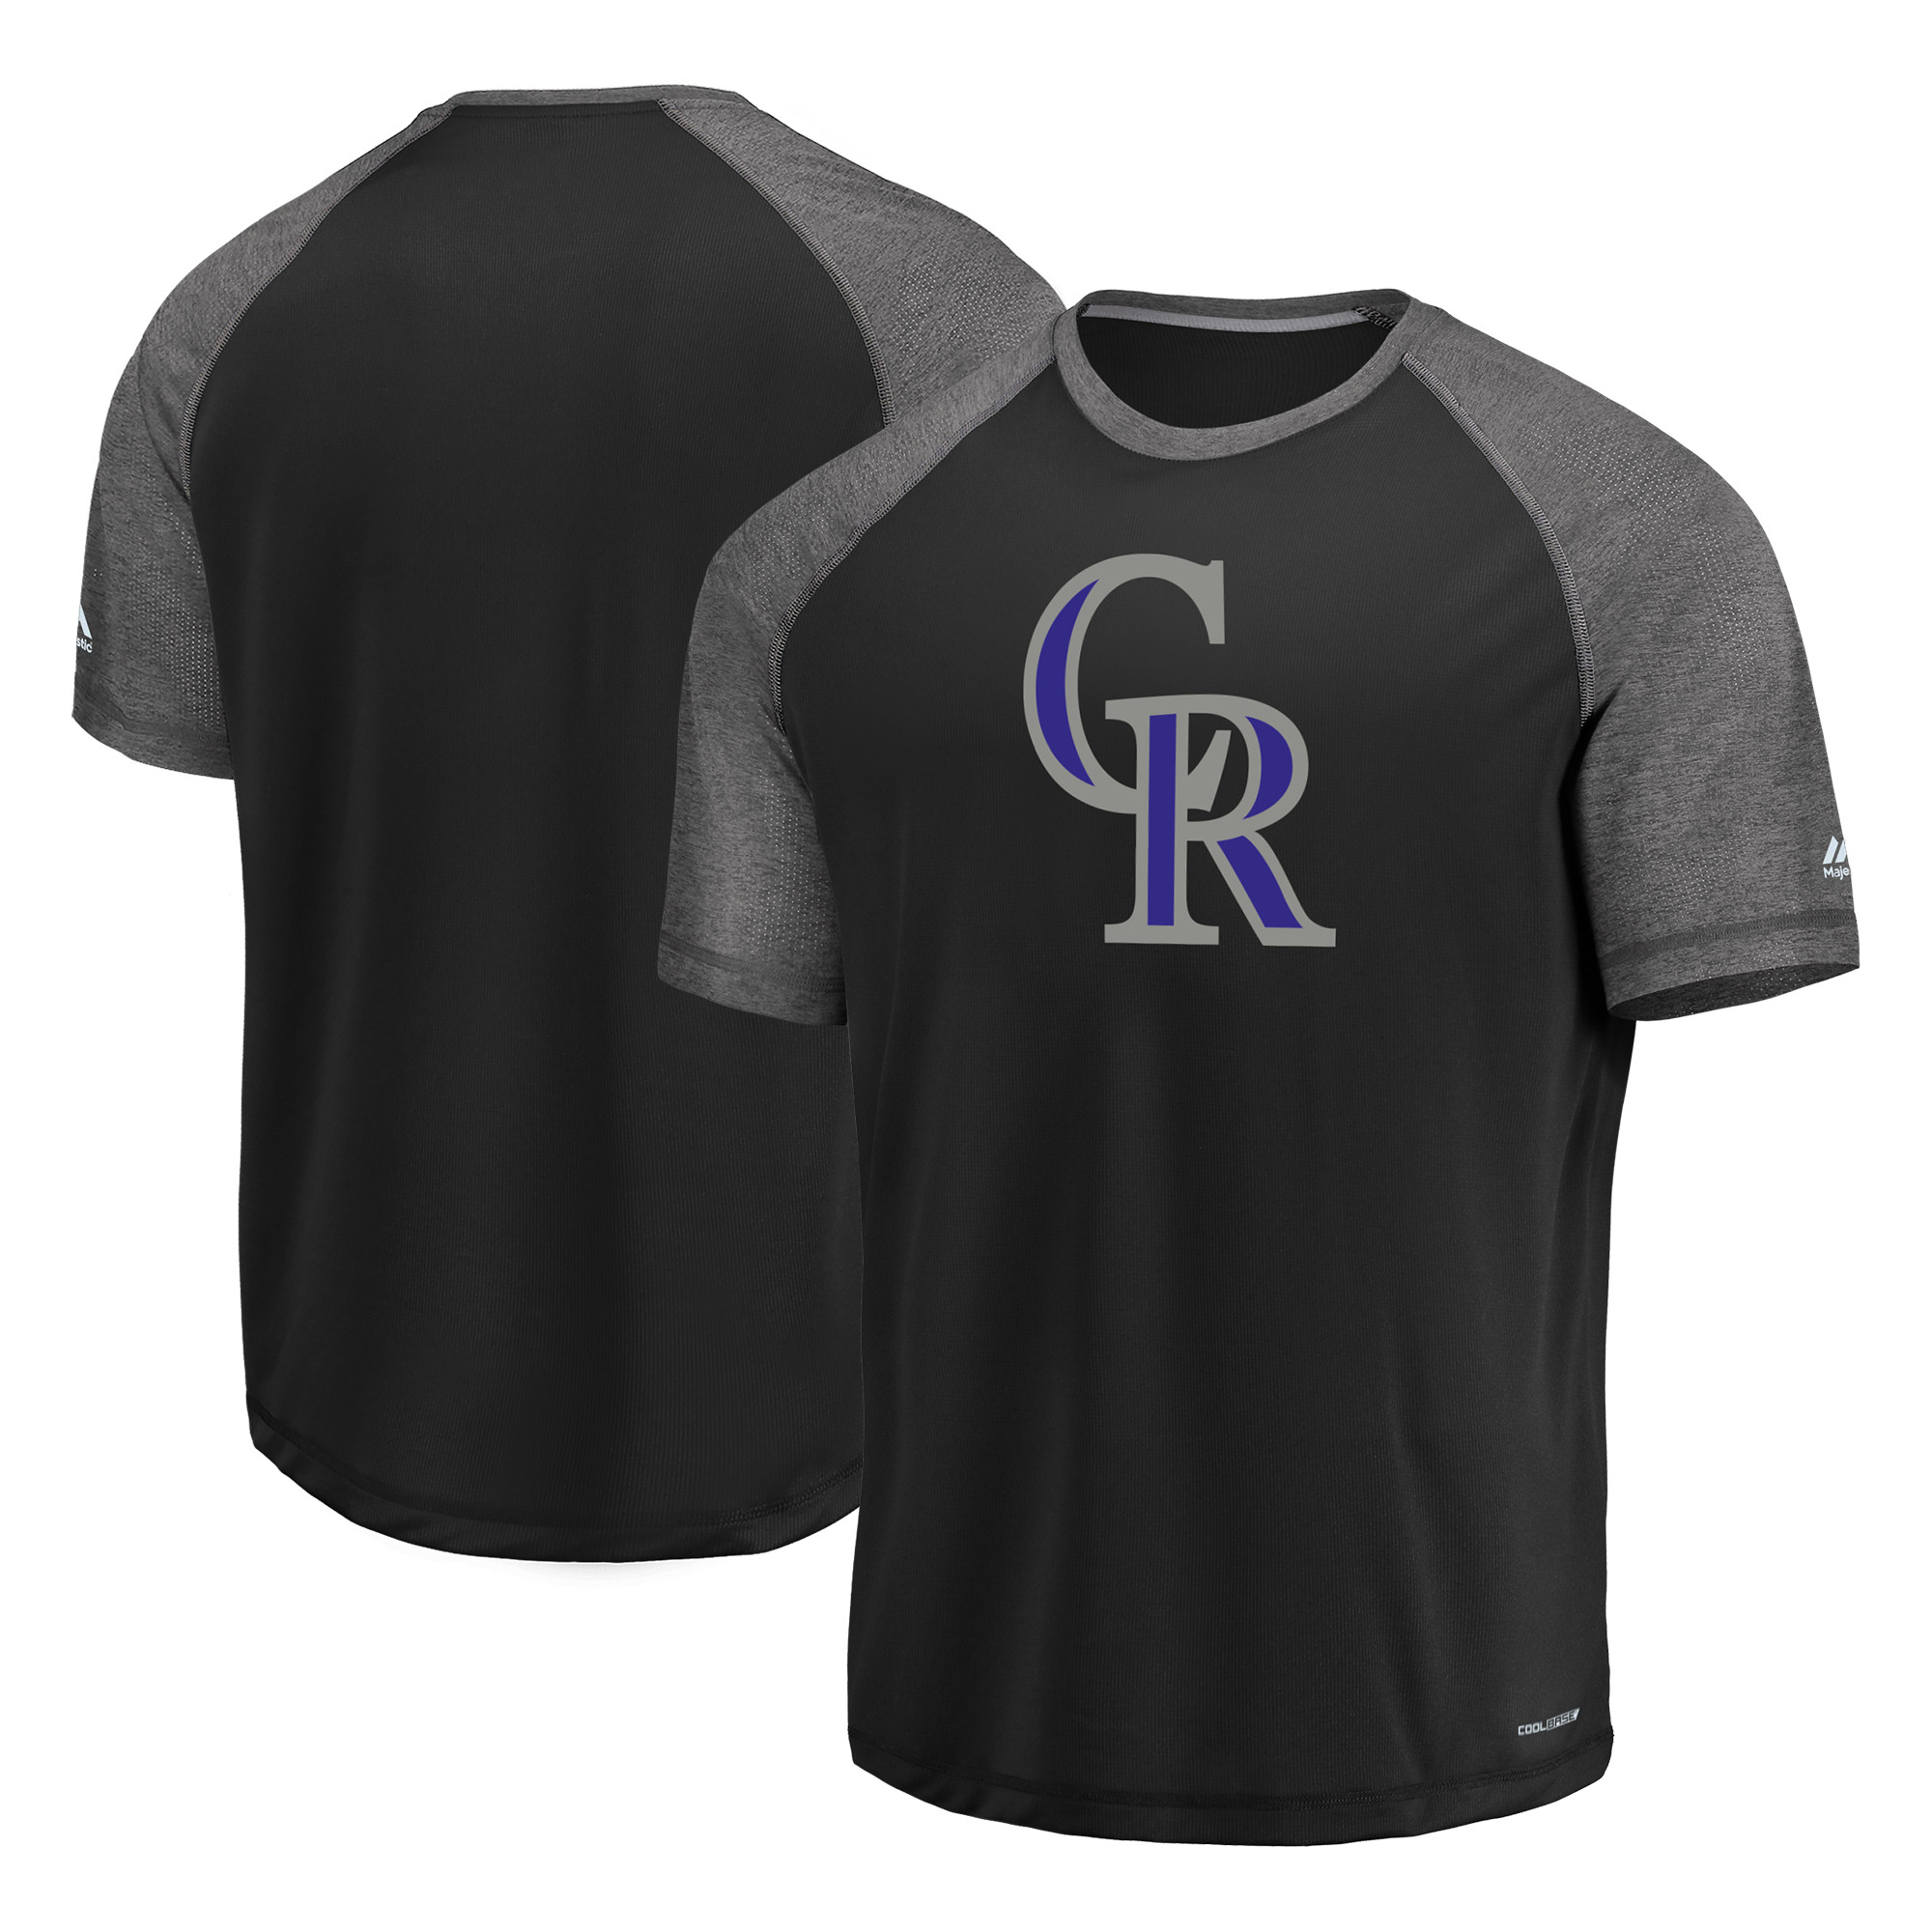 Colorado Rockies Majestic Got the Word Cool Base T-Shirt Black by MAJESTIC LSG